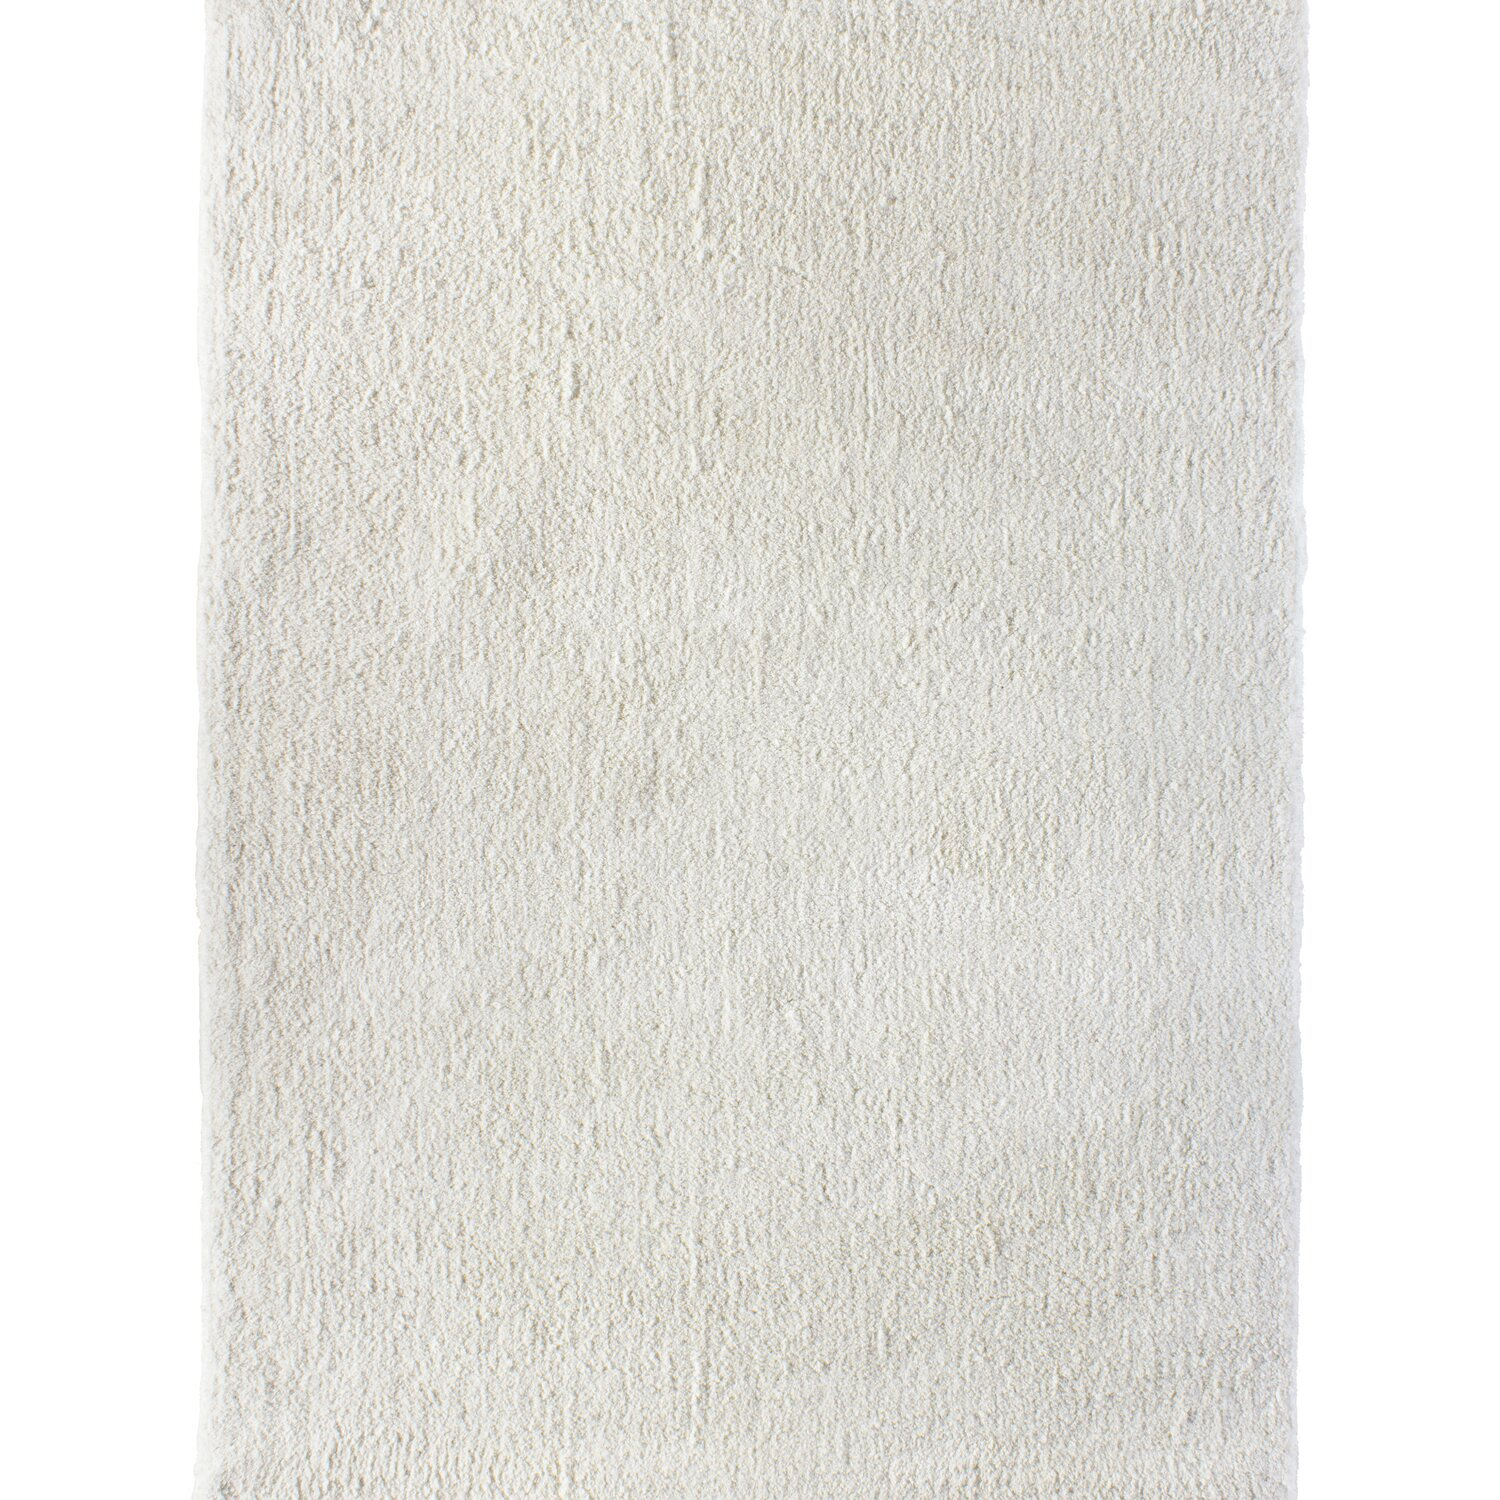 bb home passion Barbara Becker Teppich Touch 140 cm x 200 cm Creme